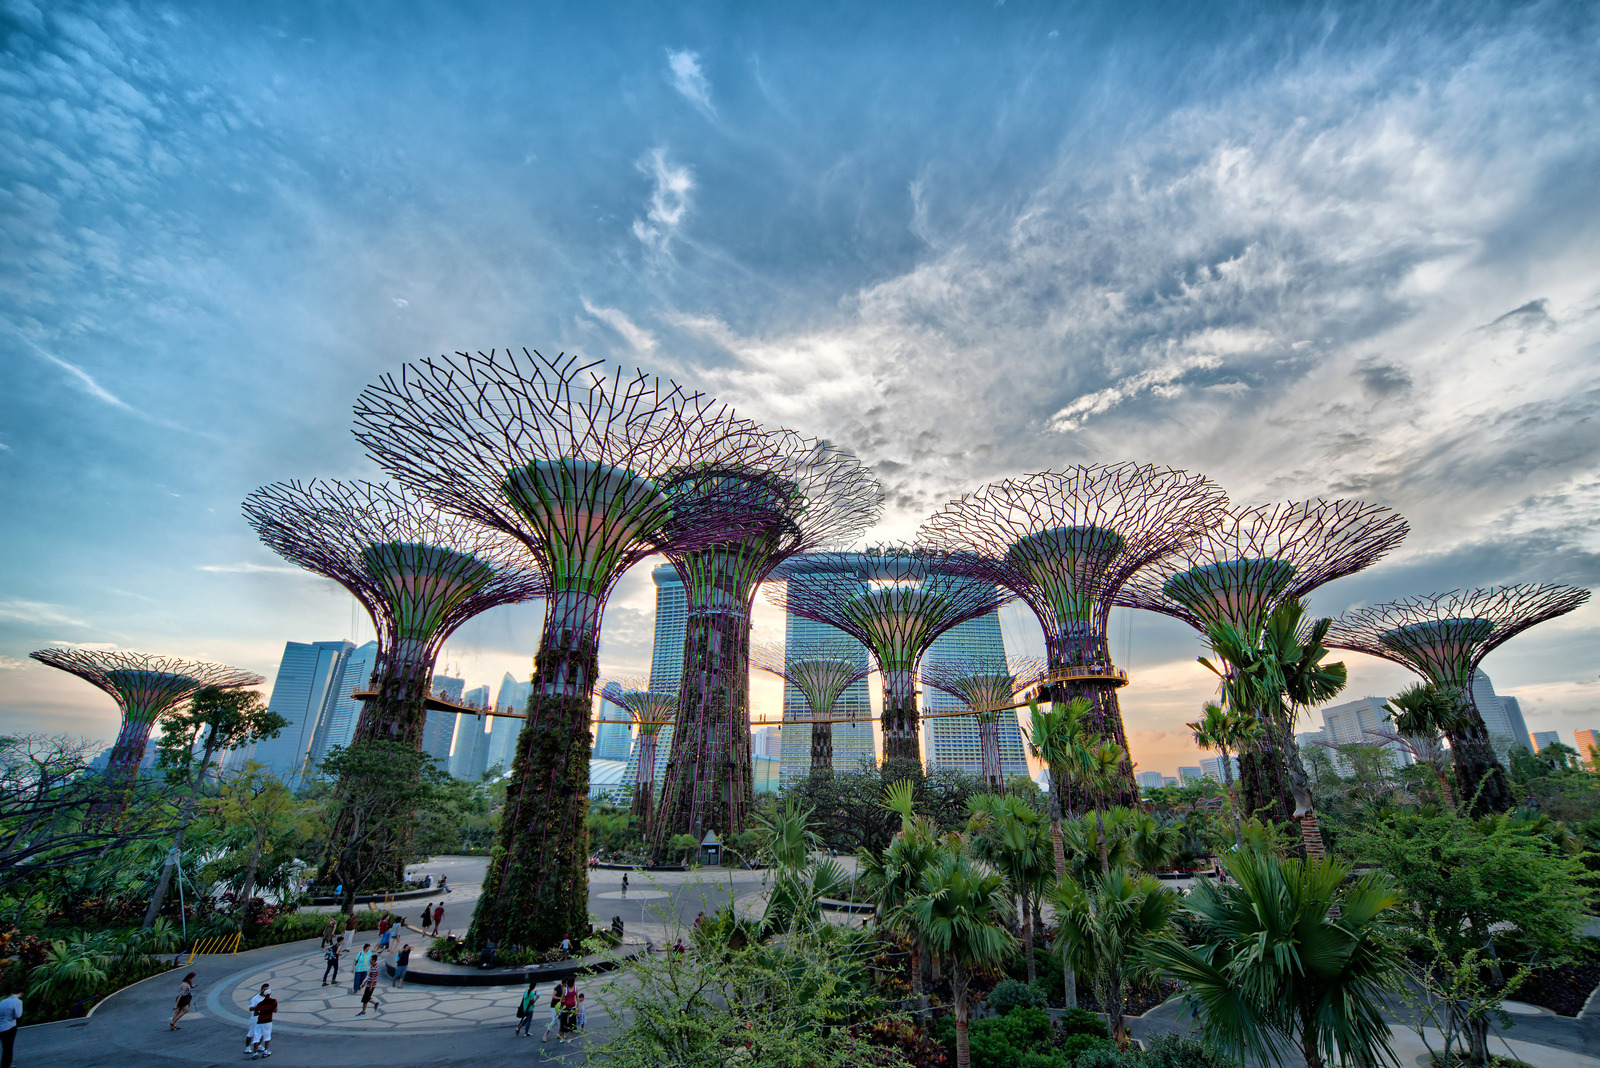 Garden By The Bay Attractions attractions of singapore!: gardenthe bay